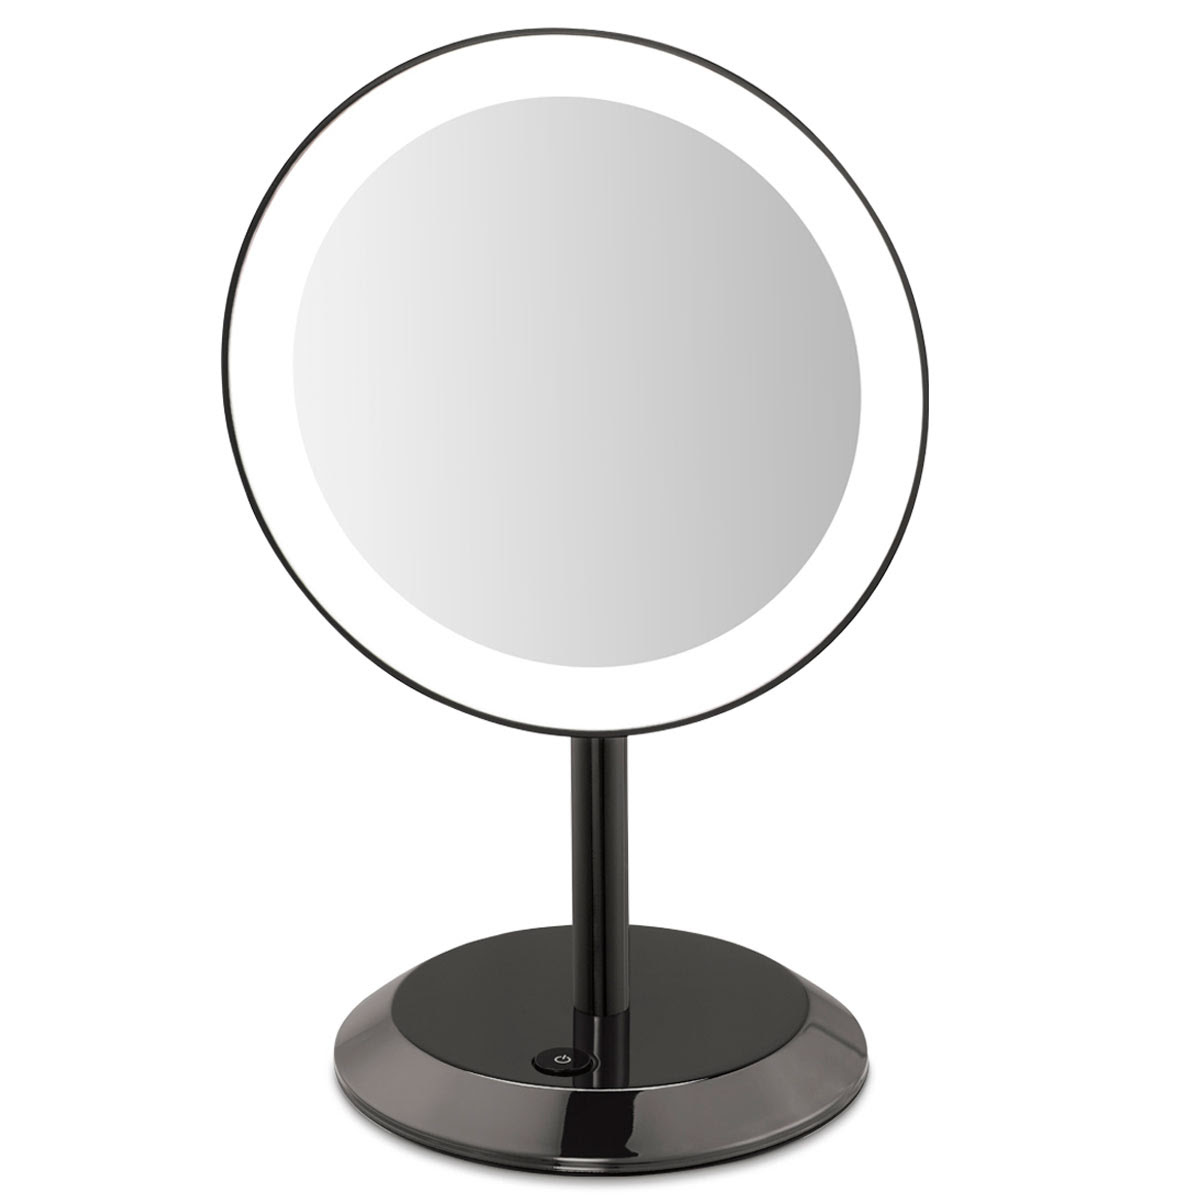 Conair Be50lbchw 9 Led Lighted Vanity Mirror 5x Magnification